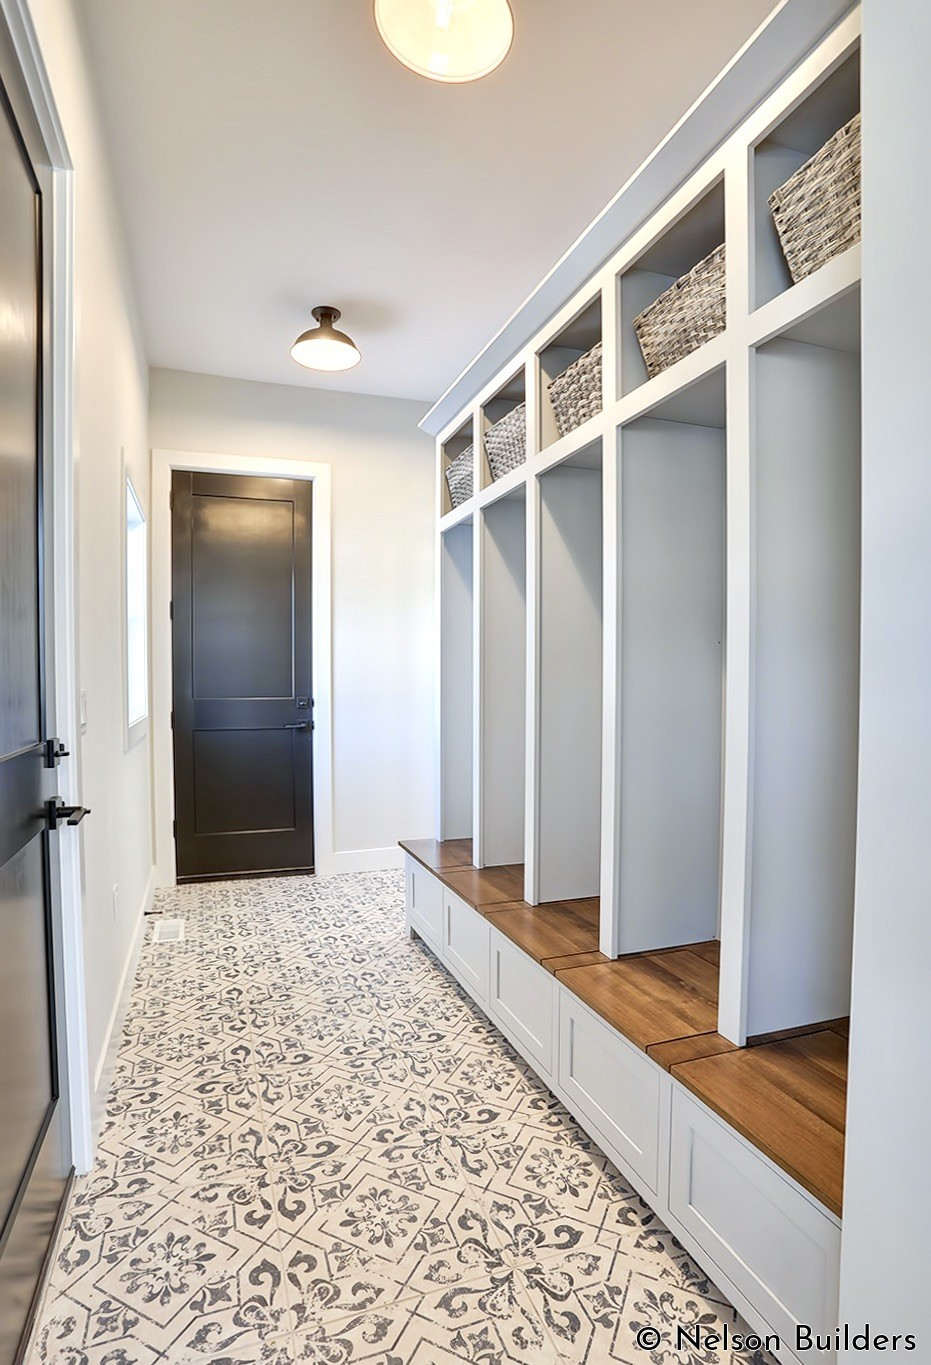 The owner's entry hall is lined with enough cubbies for every family member to have their own storage for everyday items. The bench top even folds up for more storage underneath.